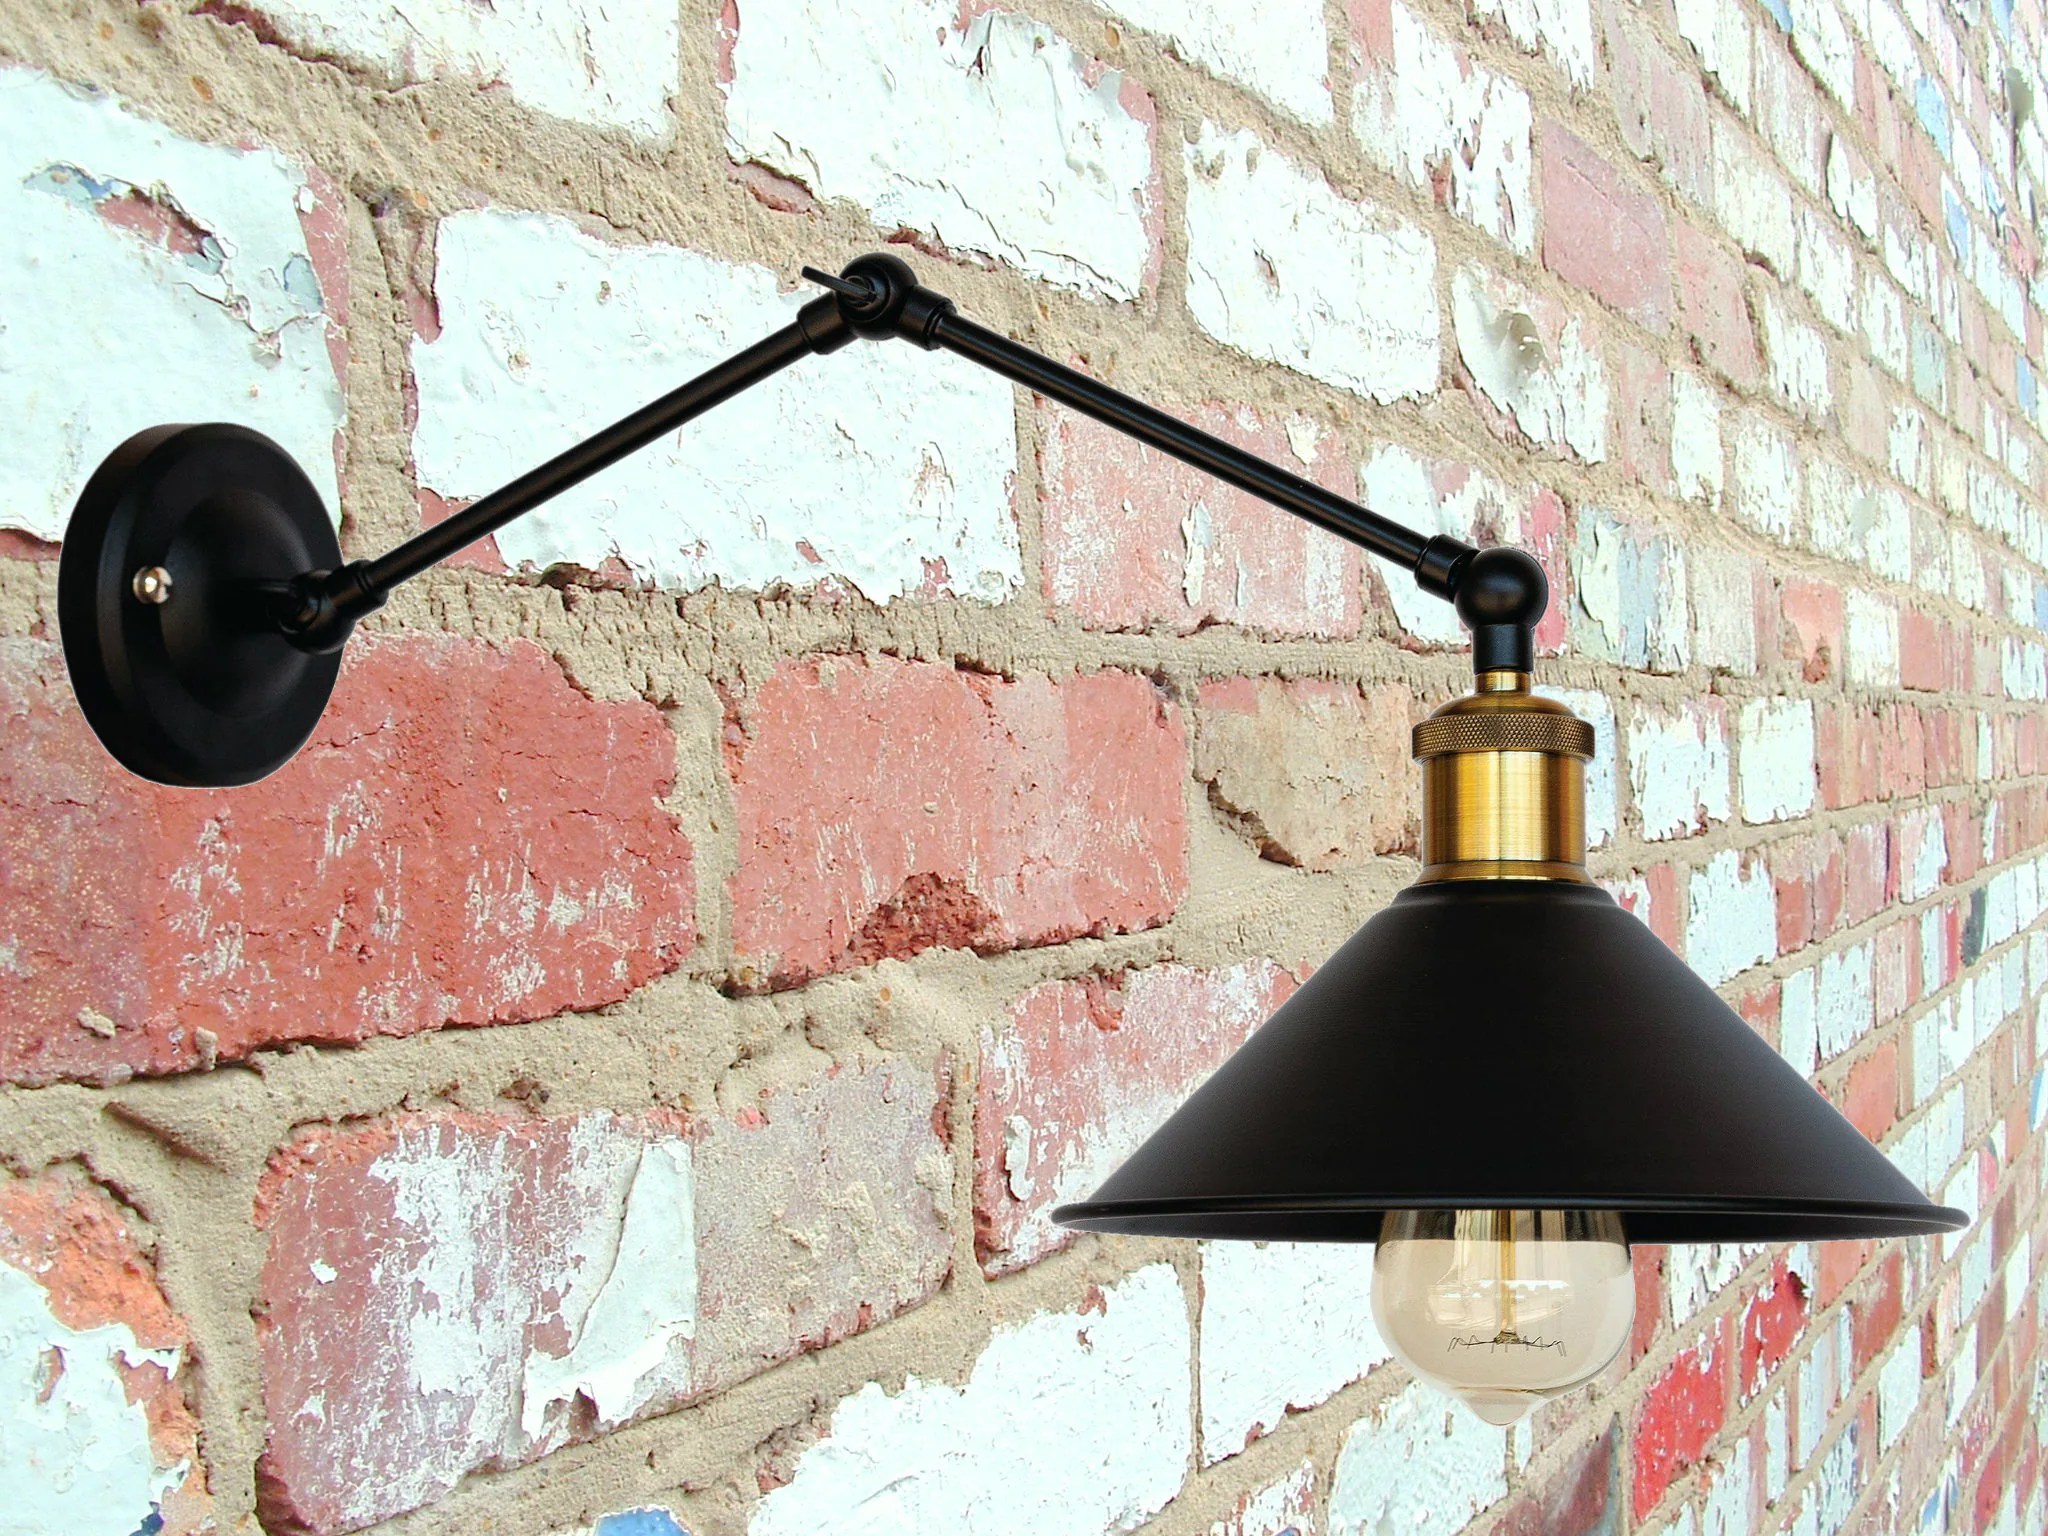 Office Wall Sconces Industrial Sconce Rustic Wall Sconce Wall Sconce Industrial Wall Sconce Industrial Lighting Downside Light Bedside Sconce Modern Wall Sconce